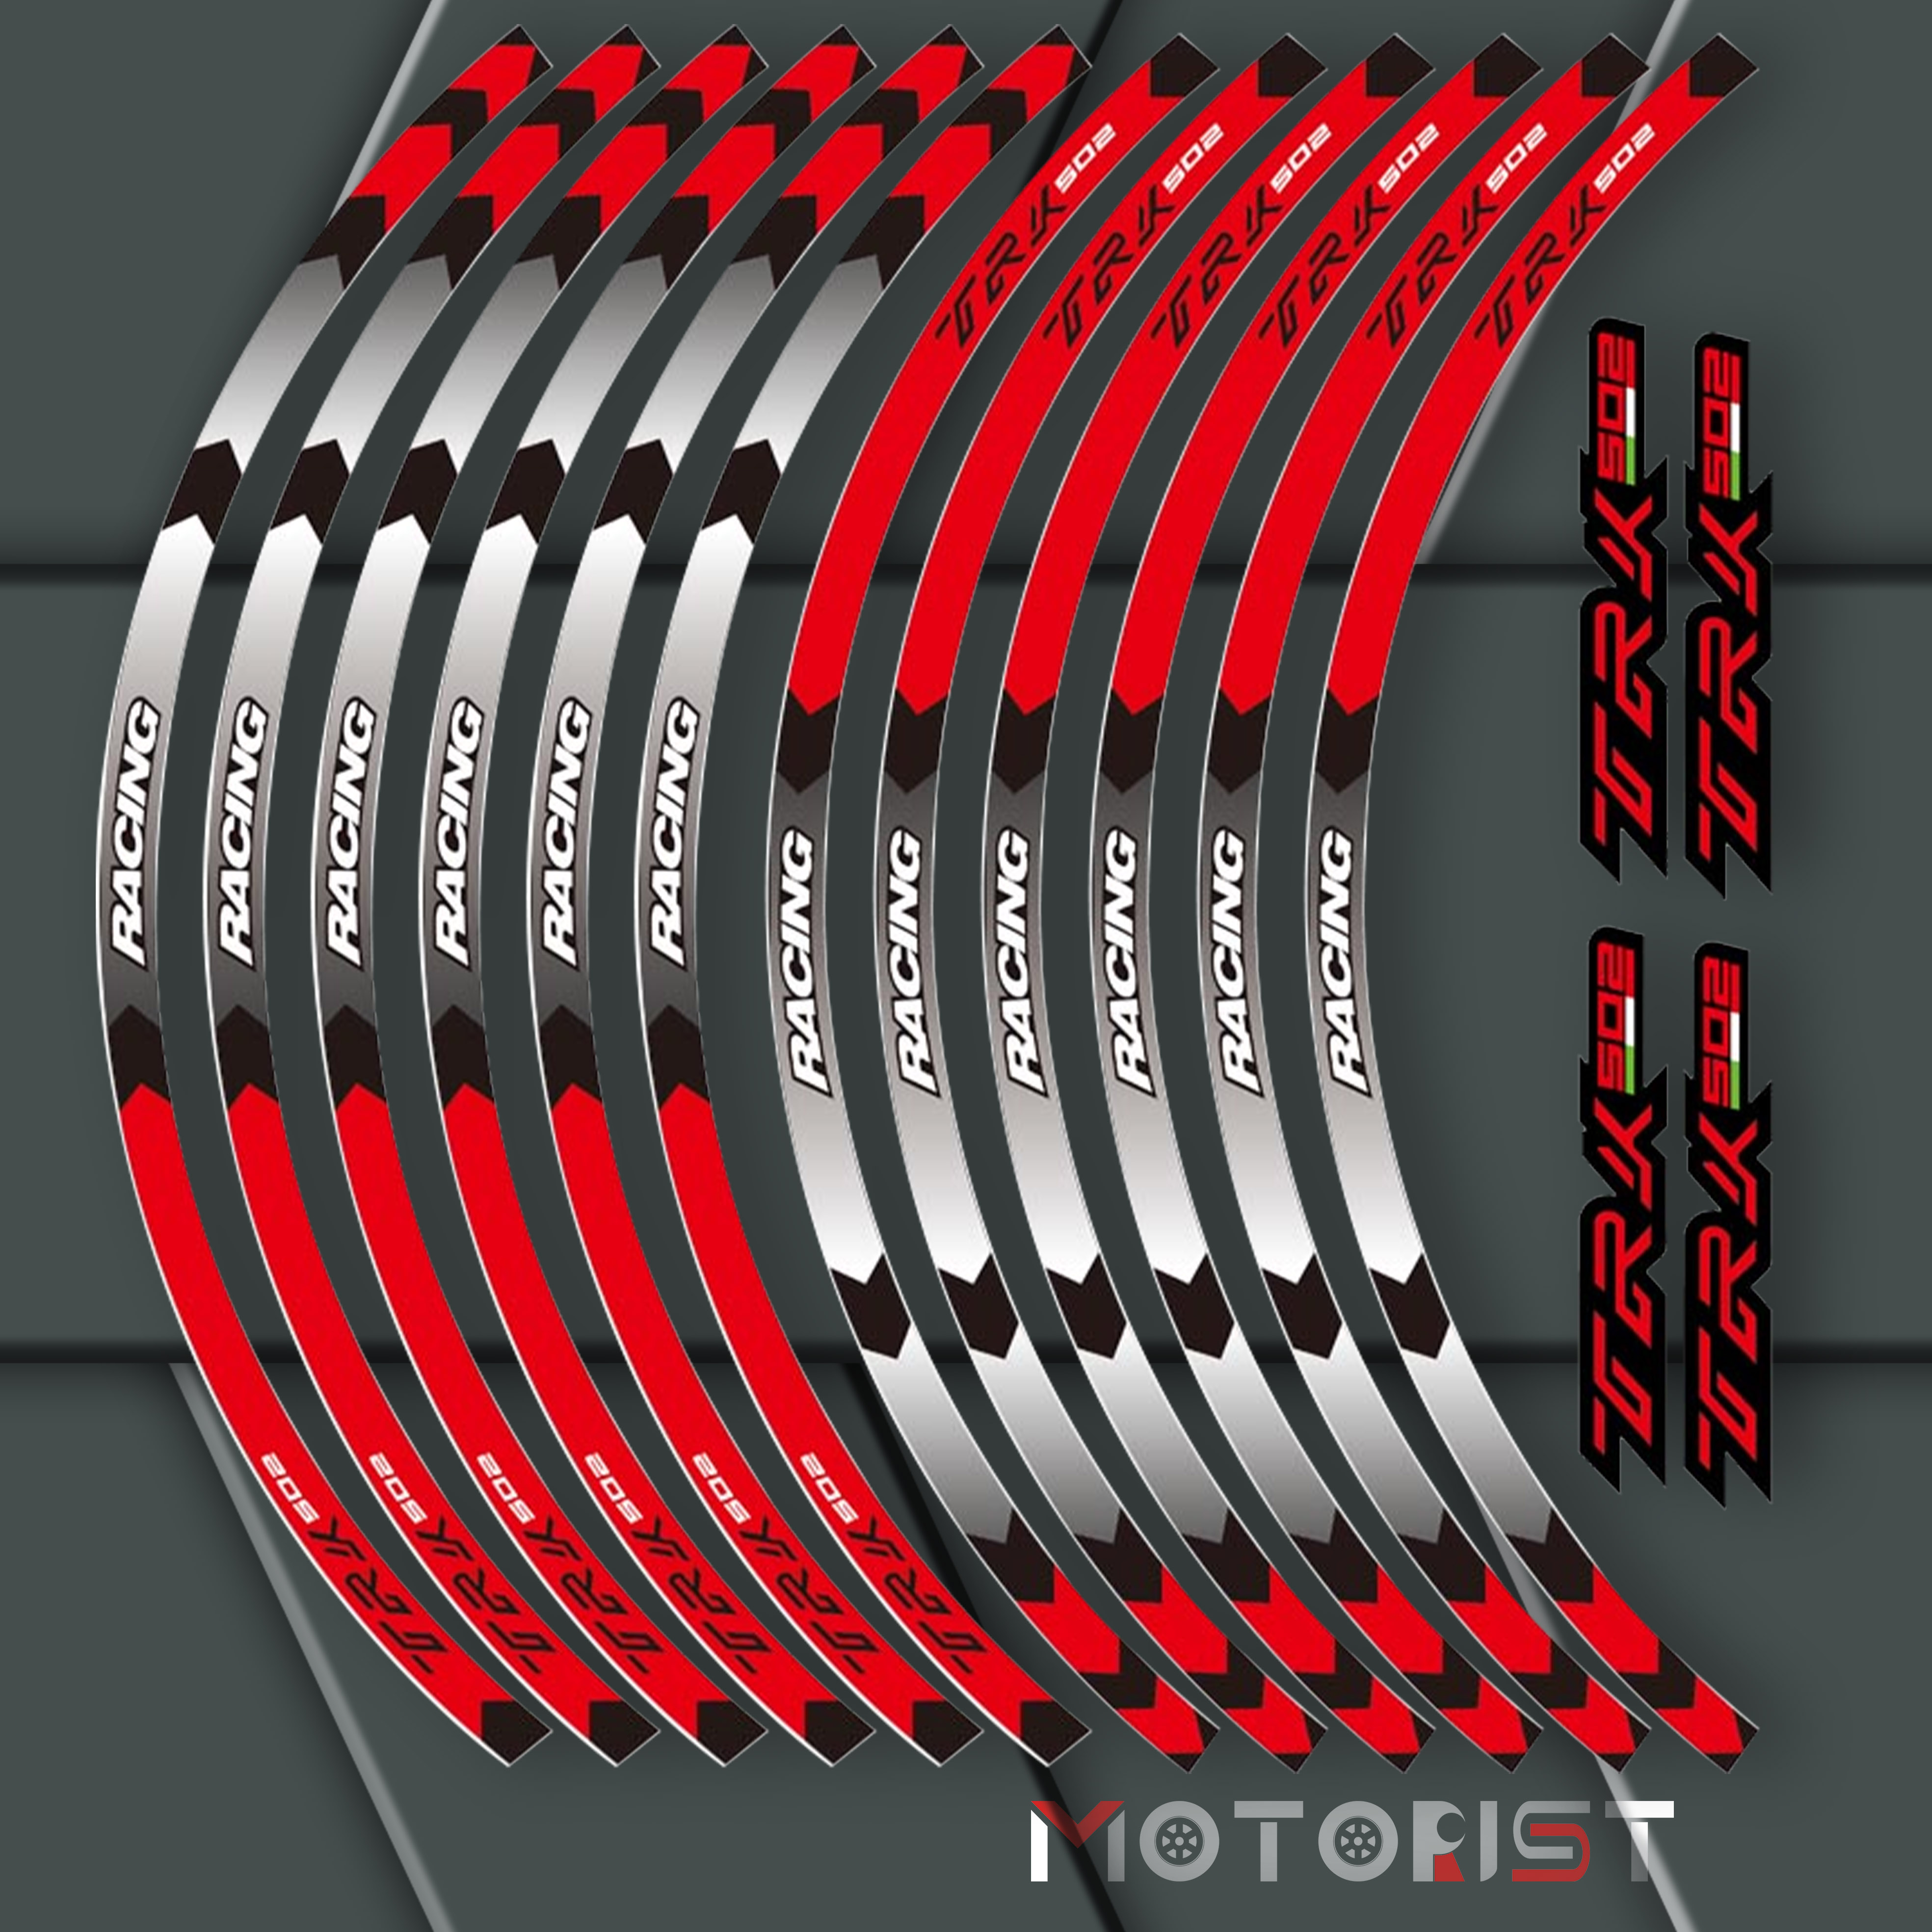 A Set Of 12pcs High Quality Motorcycle Wheel Decals Waterproof Reflective Stickers Rim Stripes For Benelli TRK 502